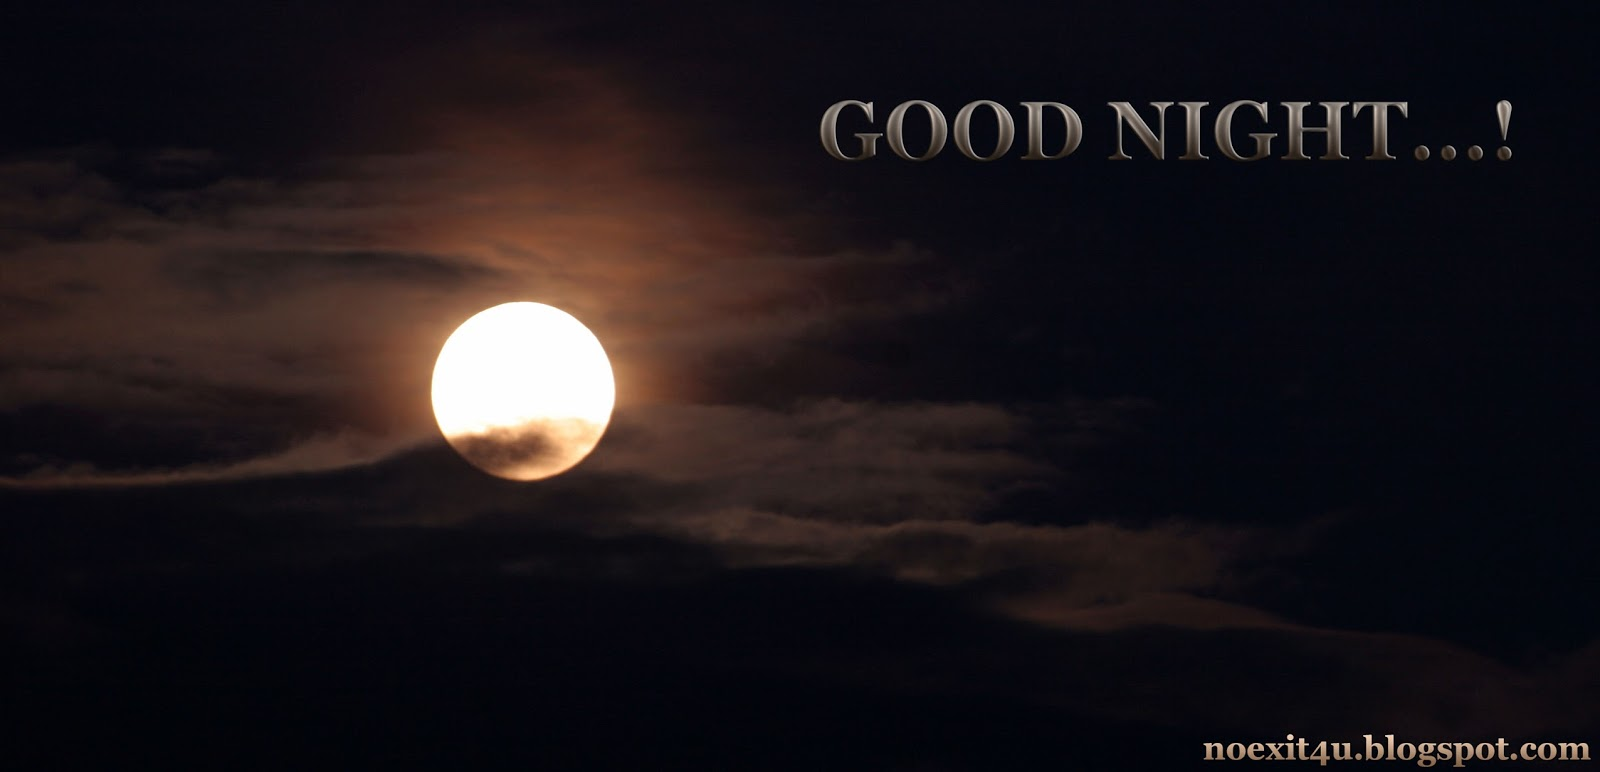 tags good night wallpaper hd download gud night wallpaper